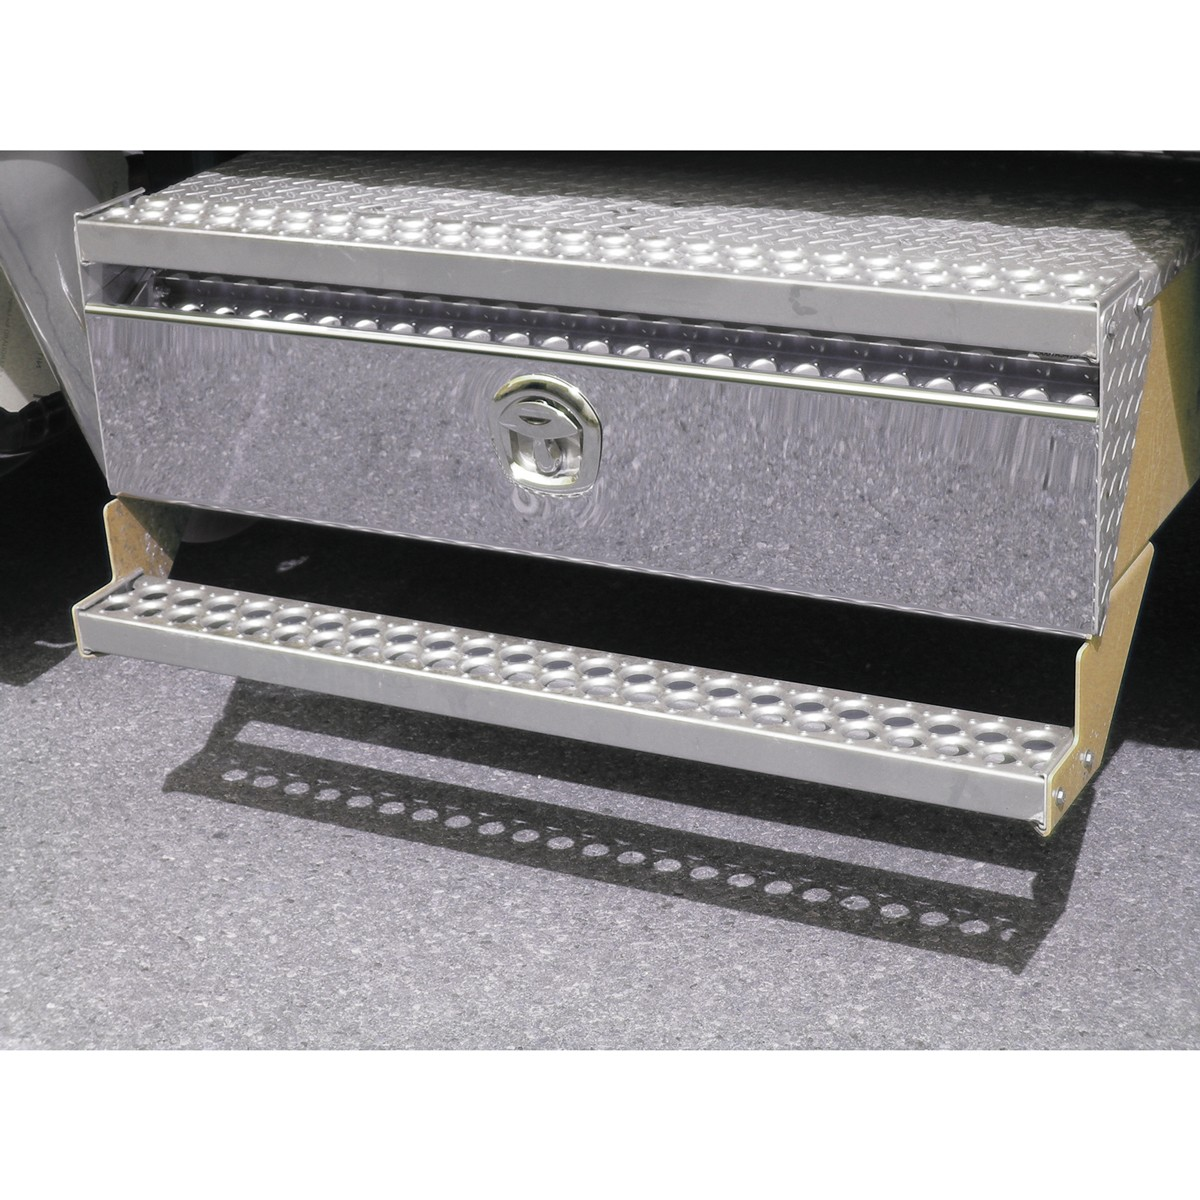 """Western Star 4900 >> WS. 48"""" Side Battery Box Cover - New Latch Style - Battery ..."""